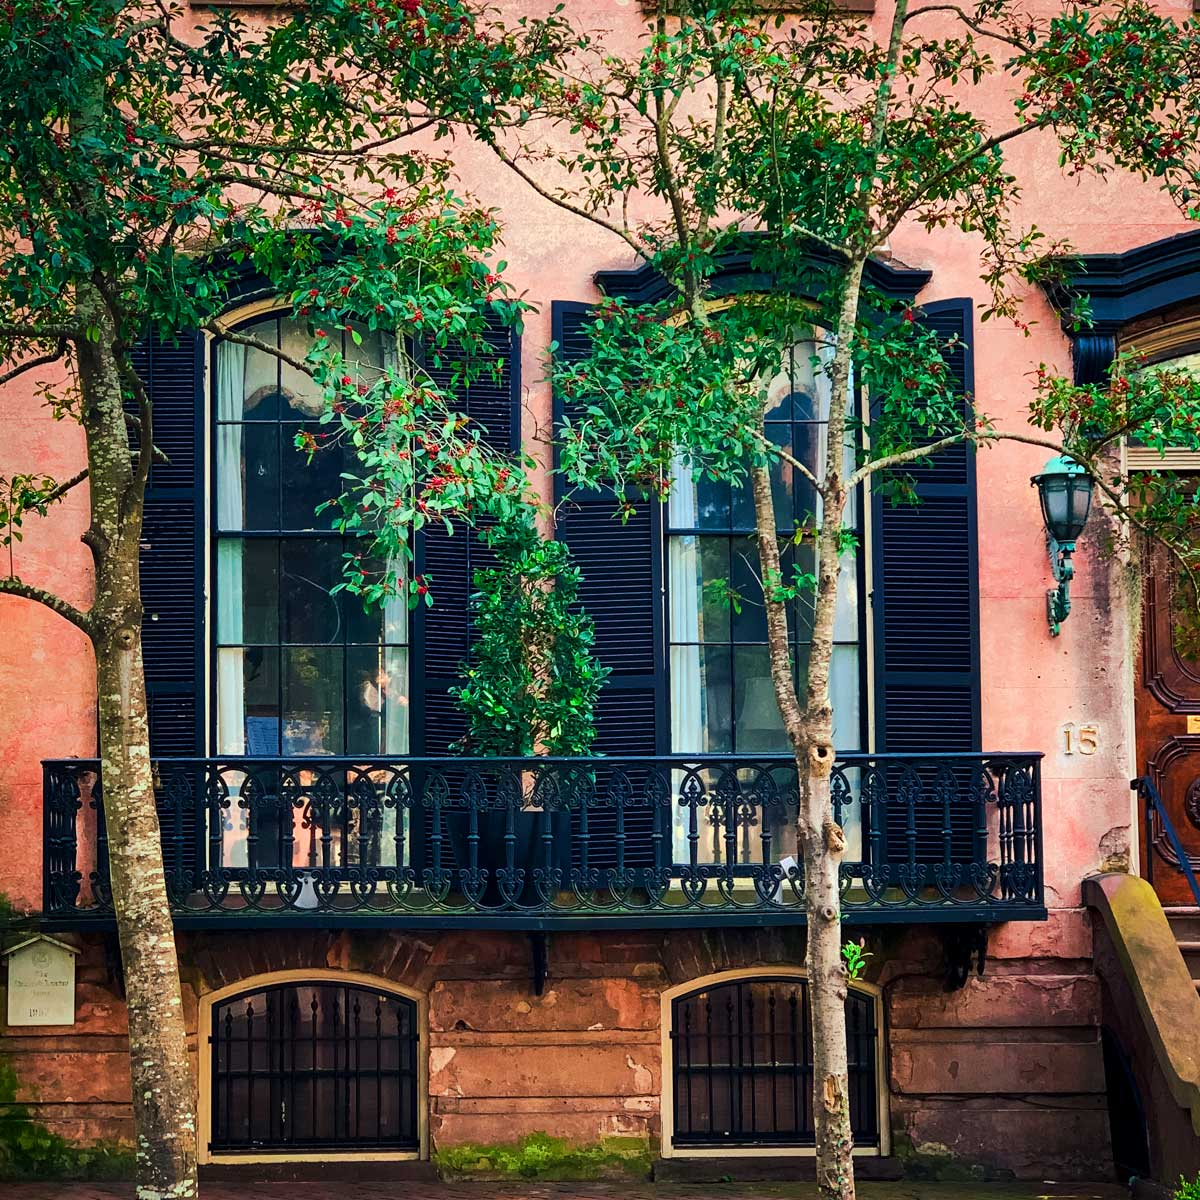 Picturesque details on a historic home in downtown Savannah